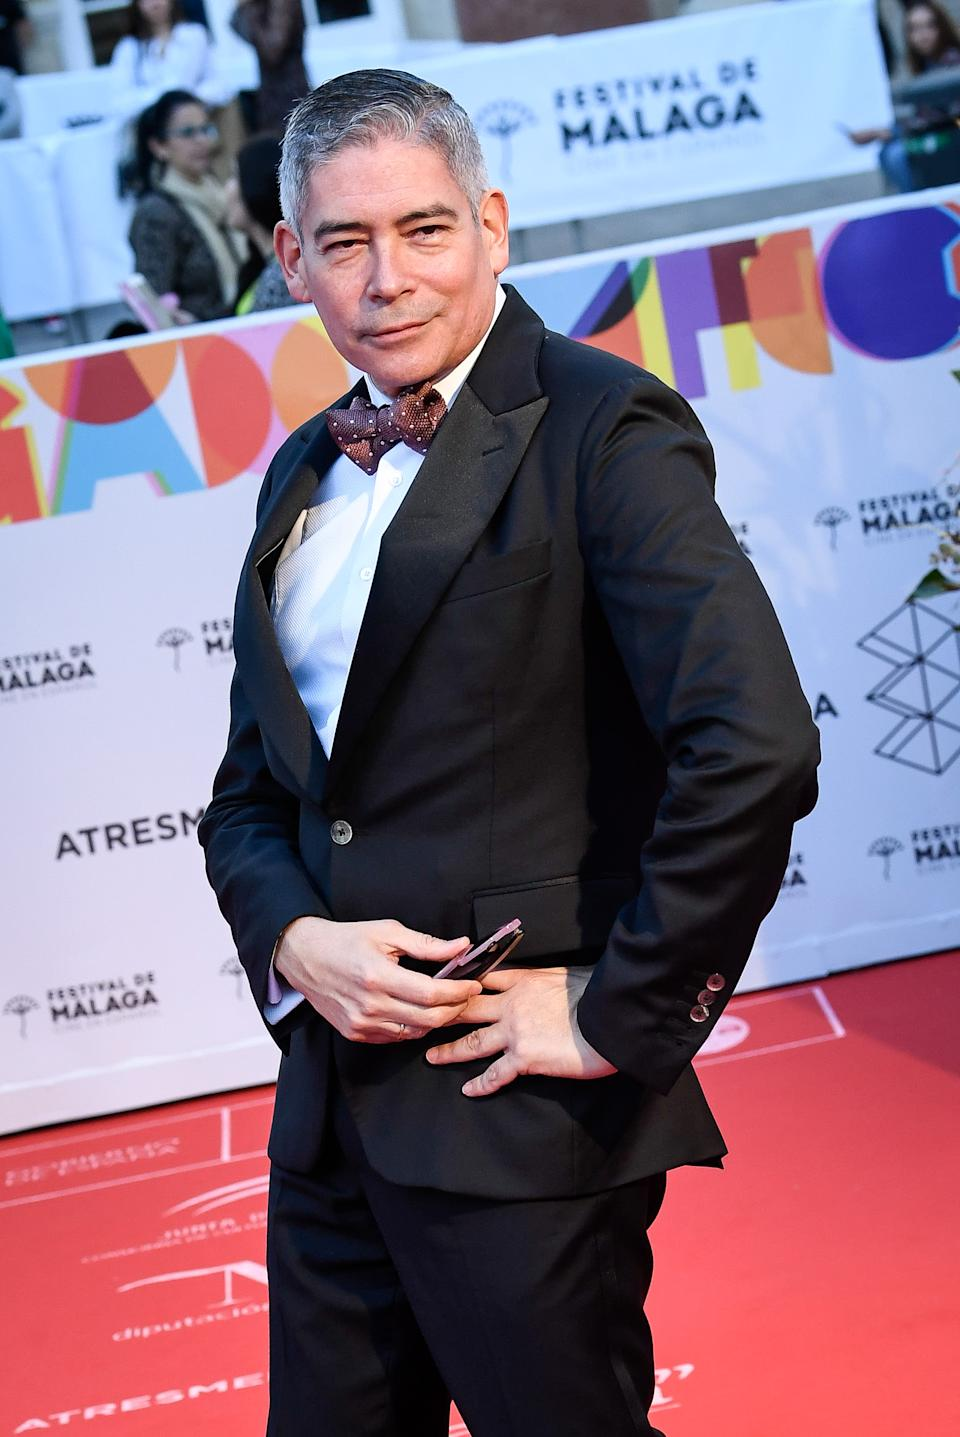 MALAGA, SPAIN - MARCH 15: Boris Izaguirre attends Opening Day - Red Carpet - Malaga Film Festival 2019 on March 15, 2019 in Malaga, Spain. (Photo by Carlos Alvarez/Getty Images)